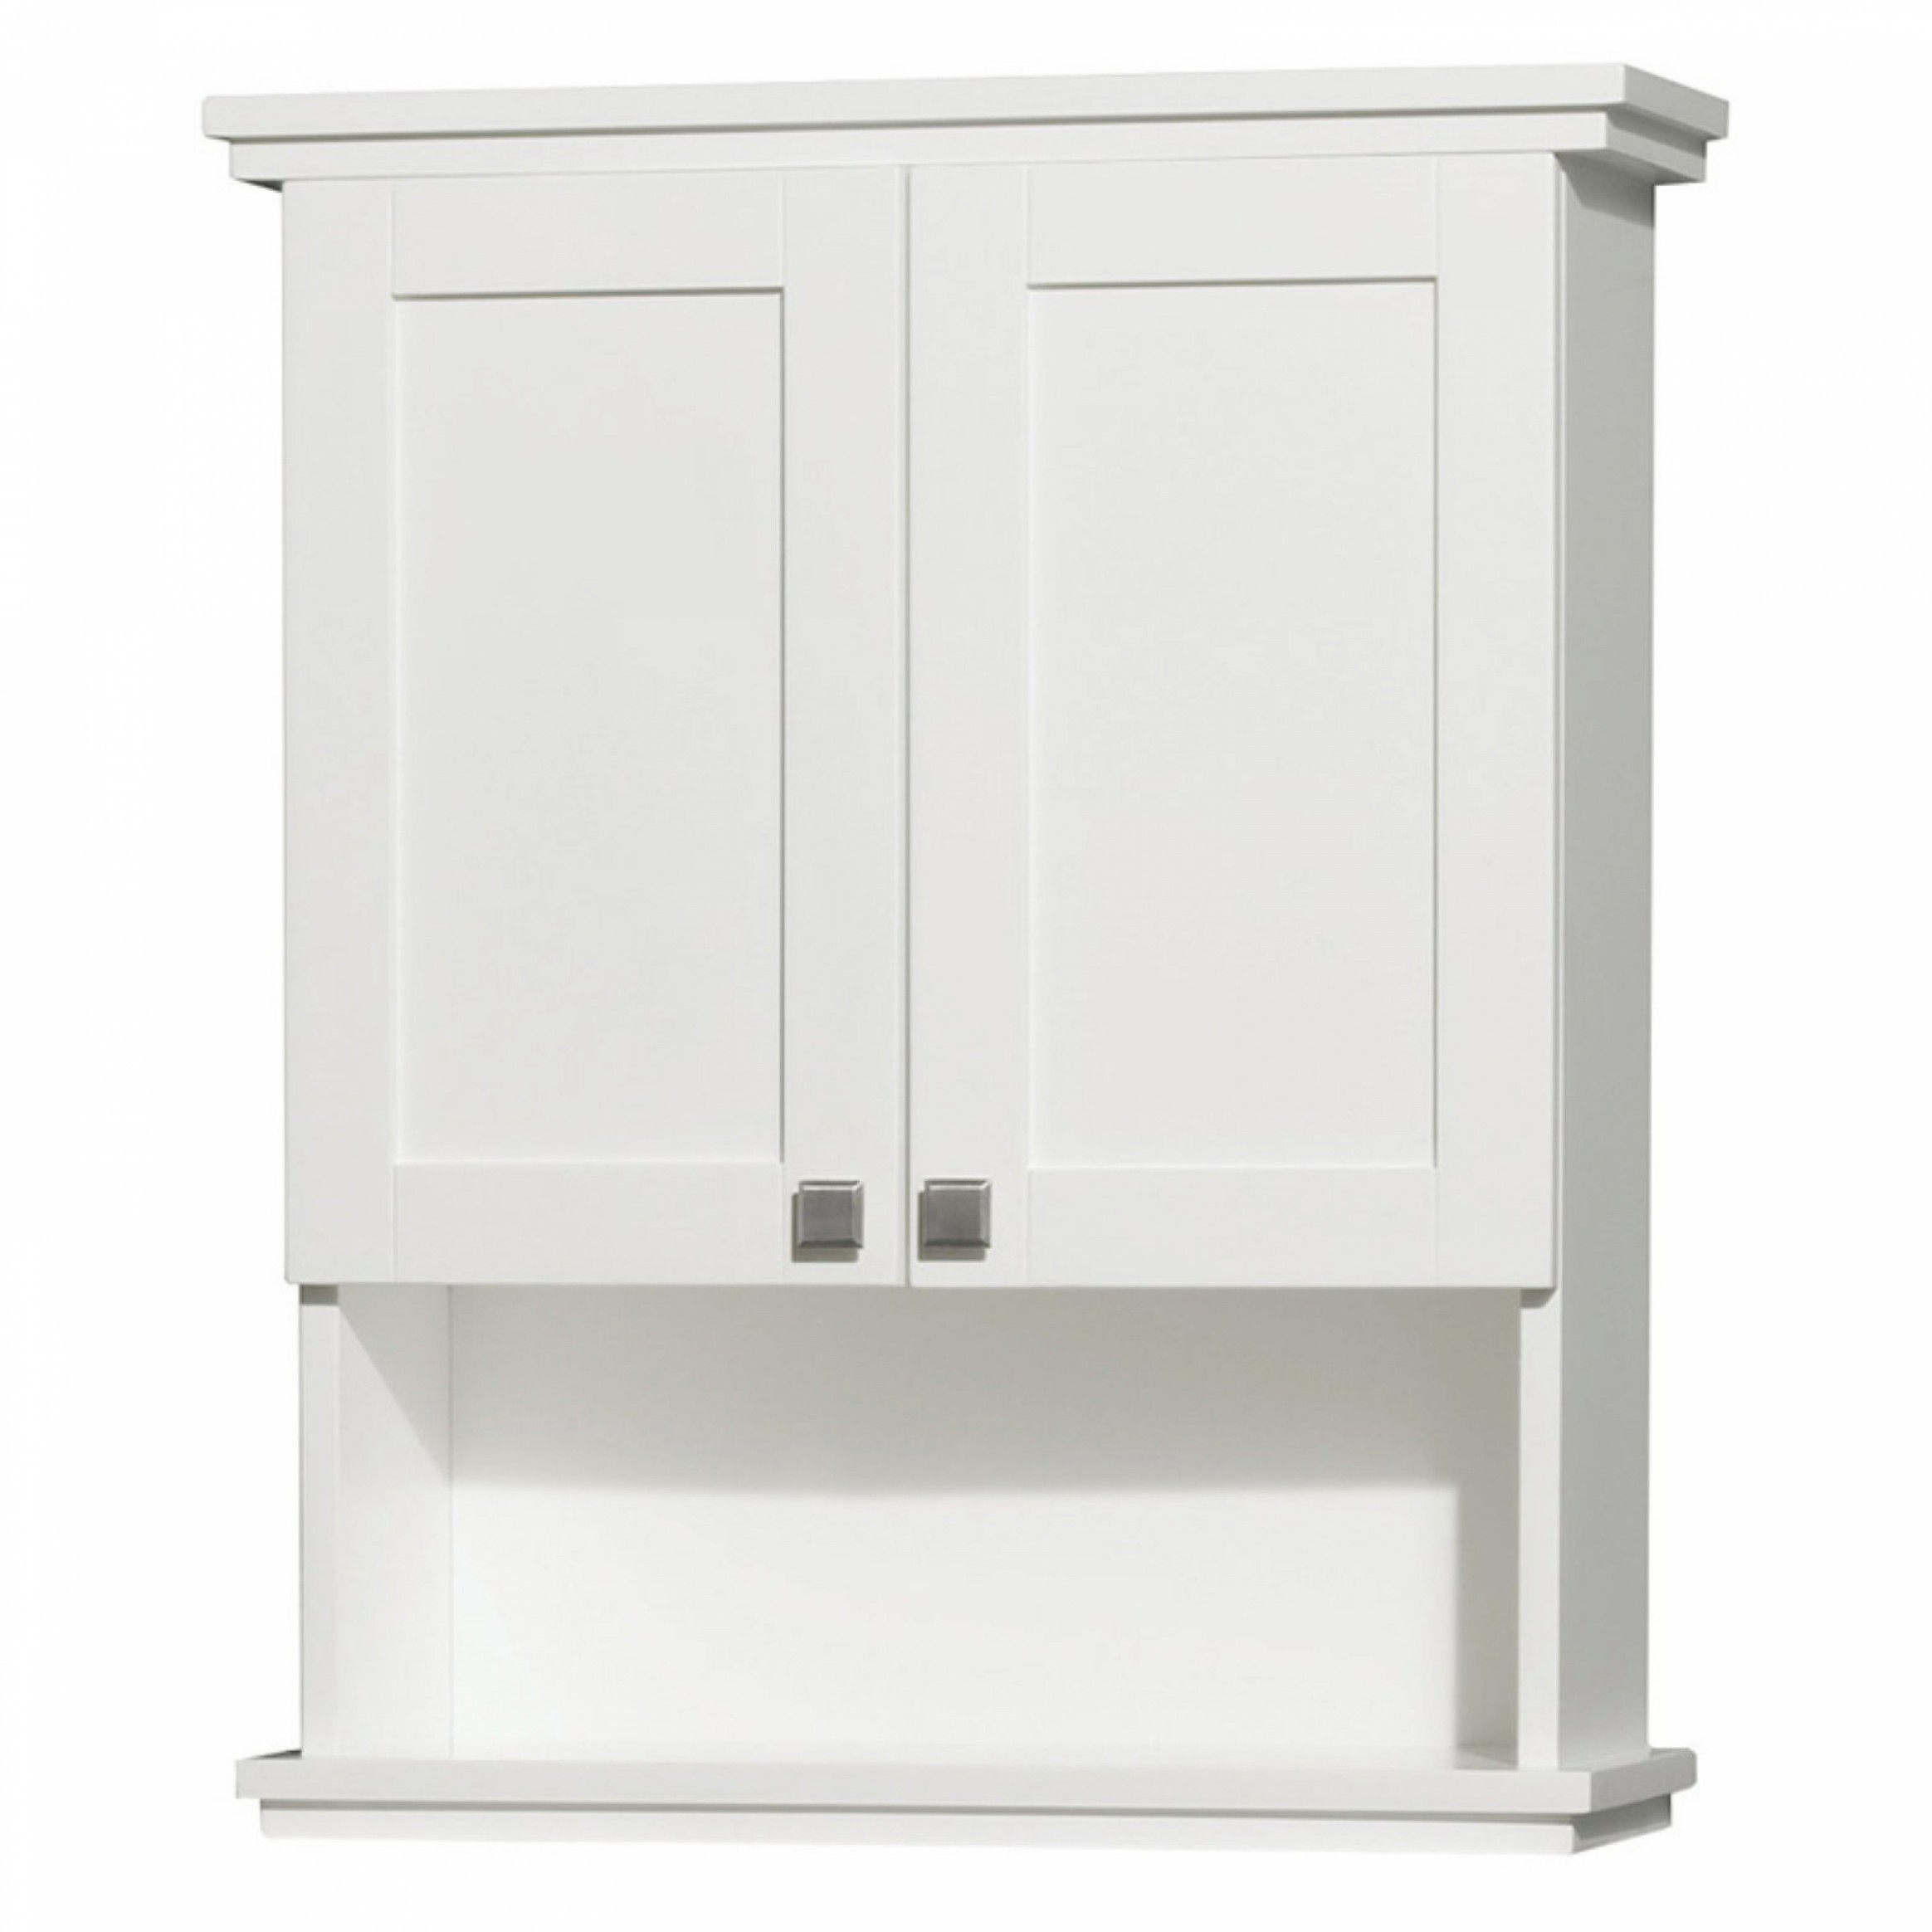 Wyndham Collection WCV8000WCWH Acclaim Wall Mount Bathroom Cabinet with Brushed Chrome Hardware White  sc 1 st  Foter & Bathroom Wall-Mounted Cabinets - Foter